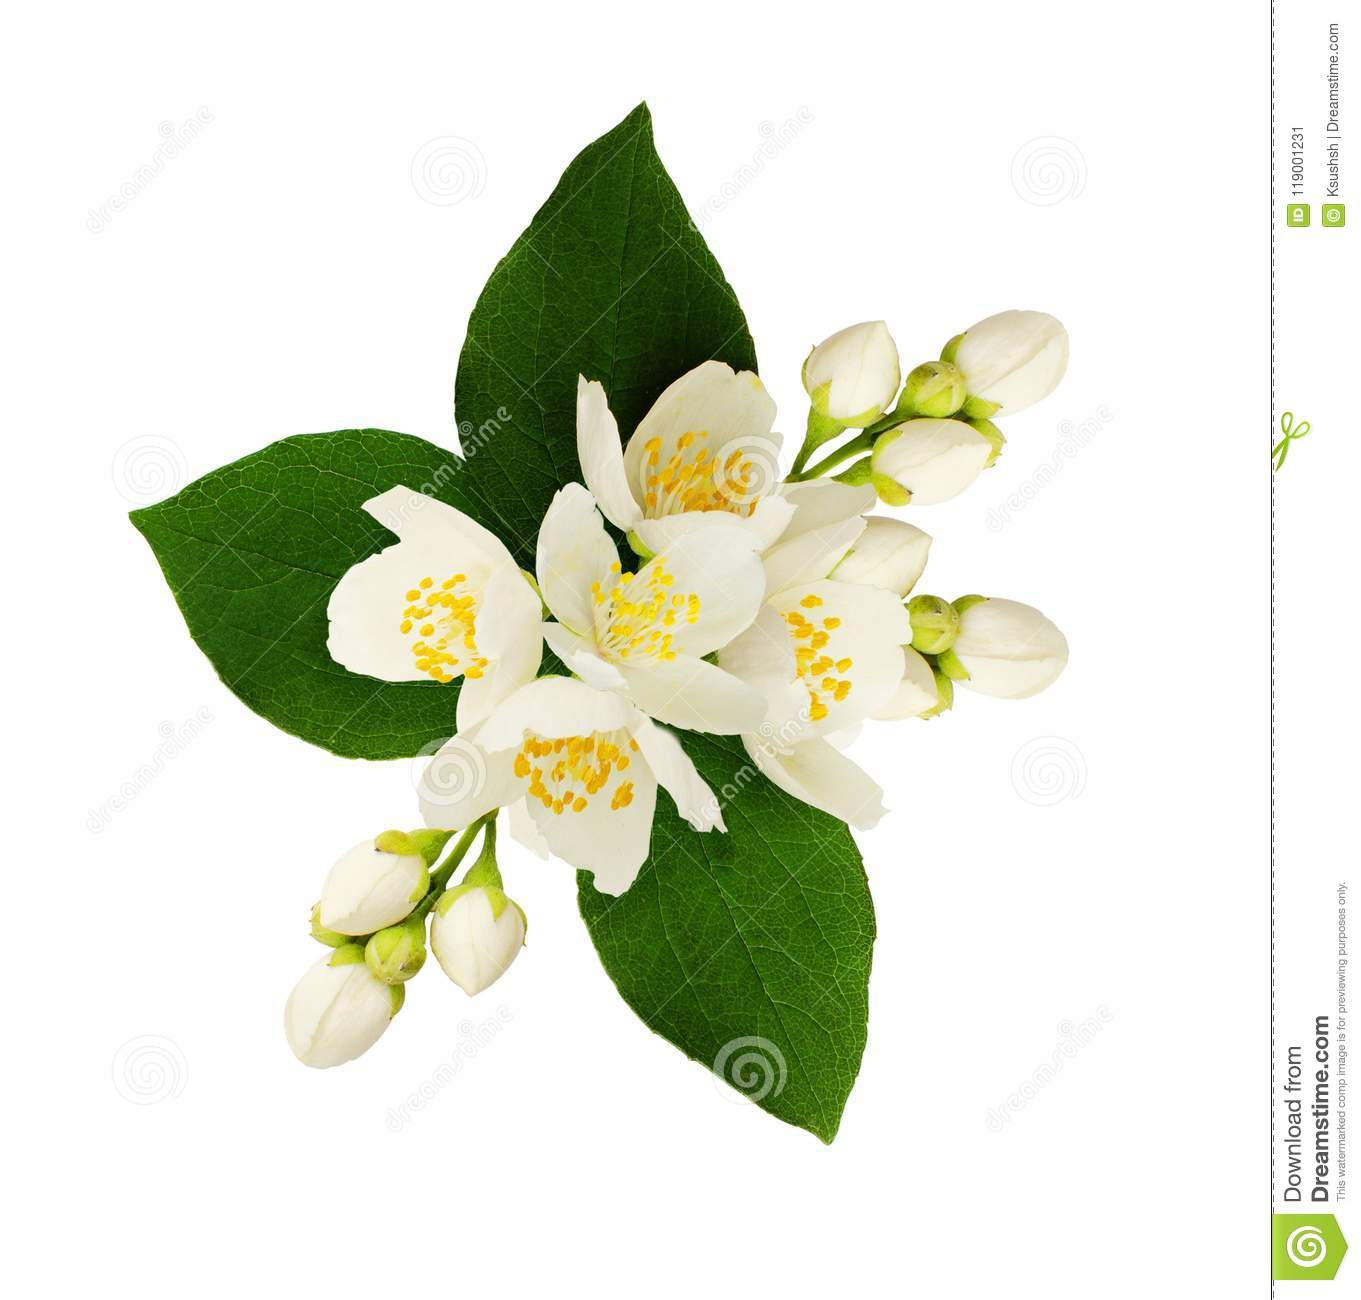 Jasmine flowers and leaves in floral arrangement stock image image download jasmine flowers and leaves in floral arrangement stock image image of blossom detail izmirmasajfo